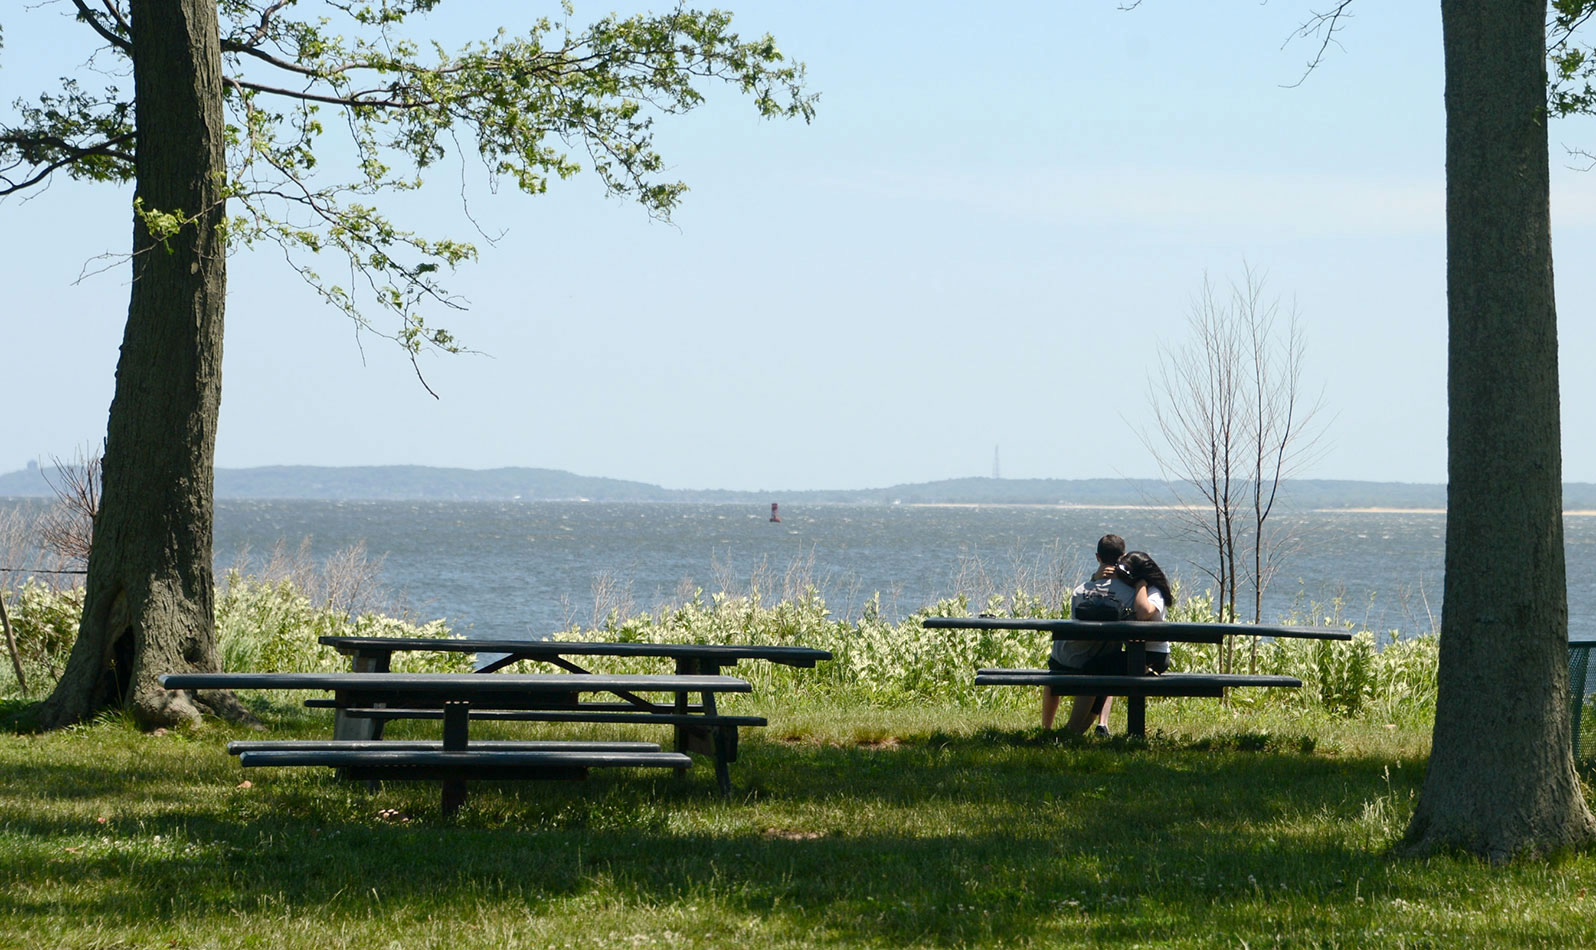 Have lunch with a view of the bay (and New Jersey!) at the picnic area just south of the beach.